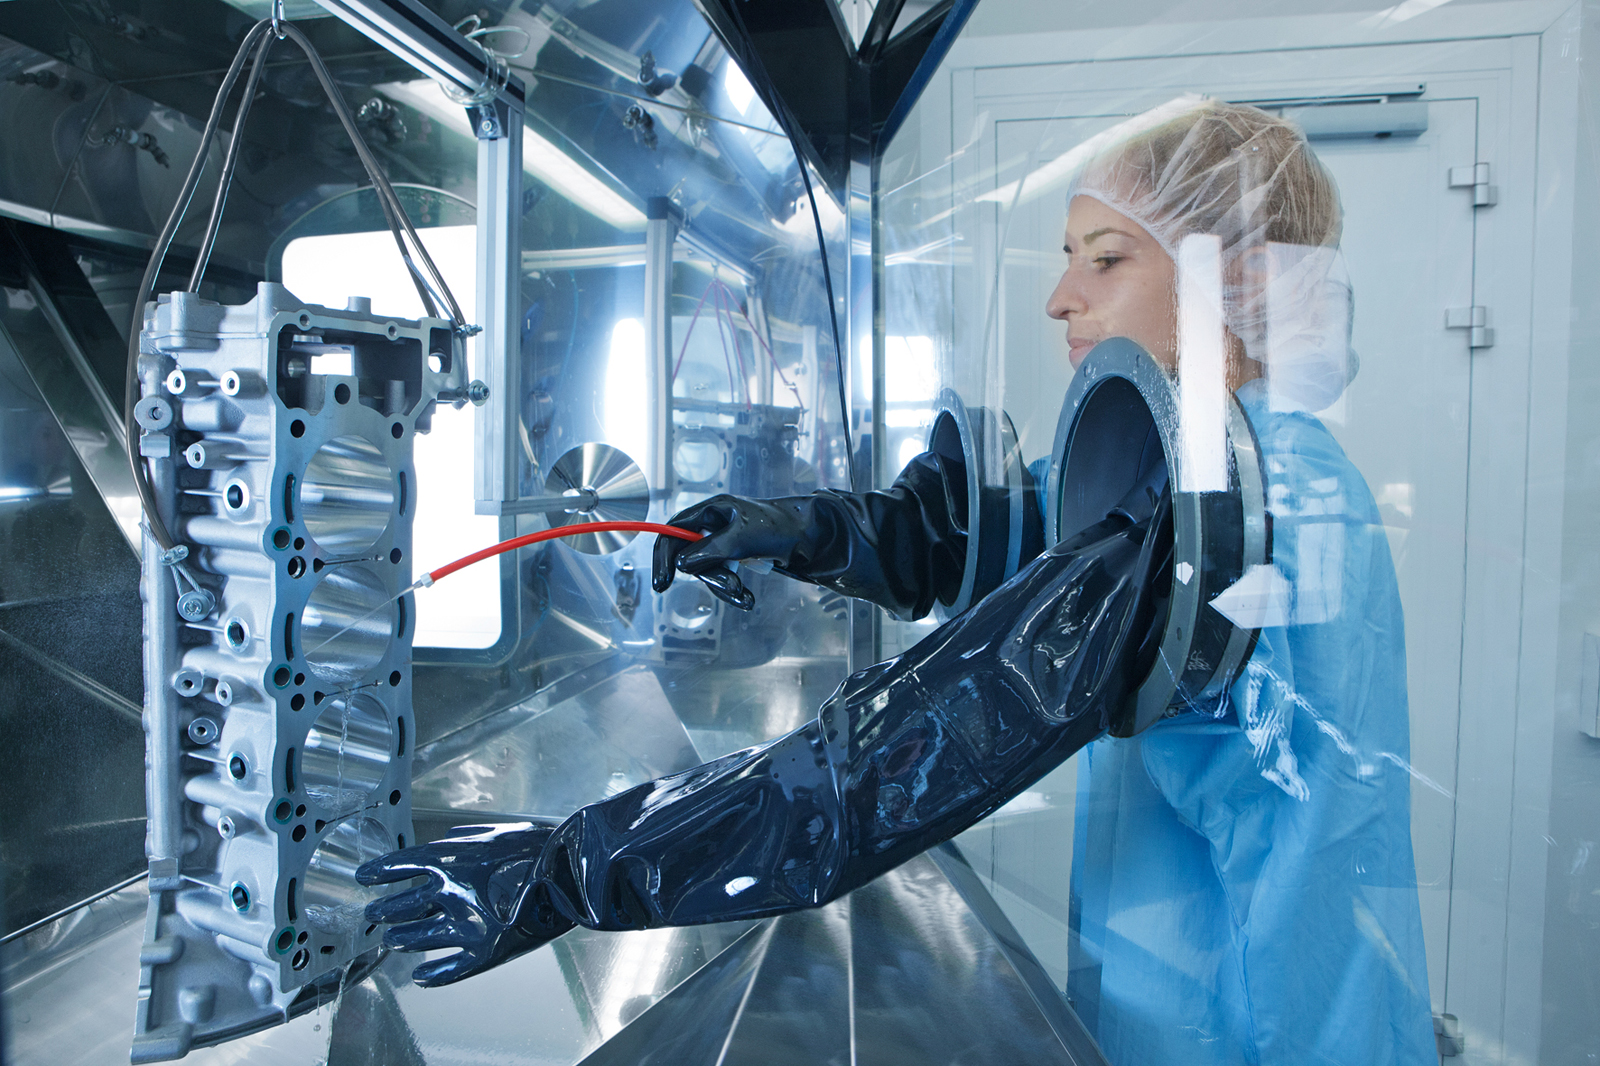 laboratory   cleaning situations